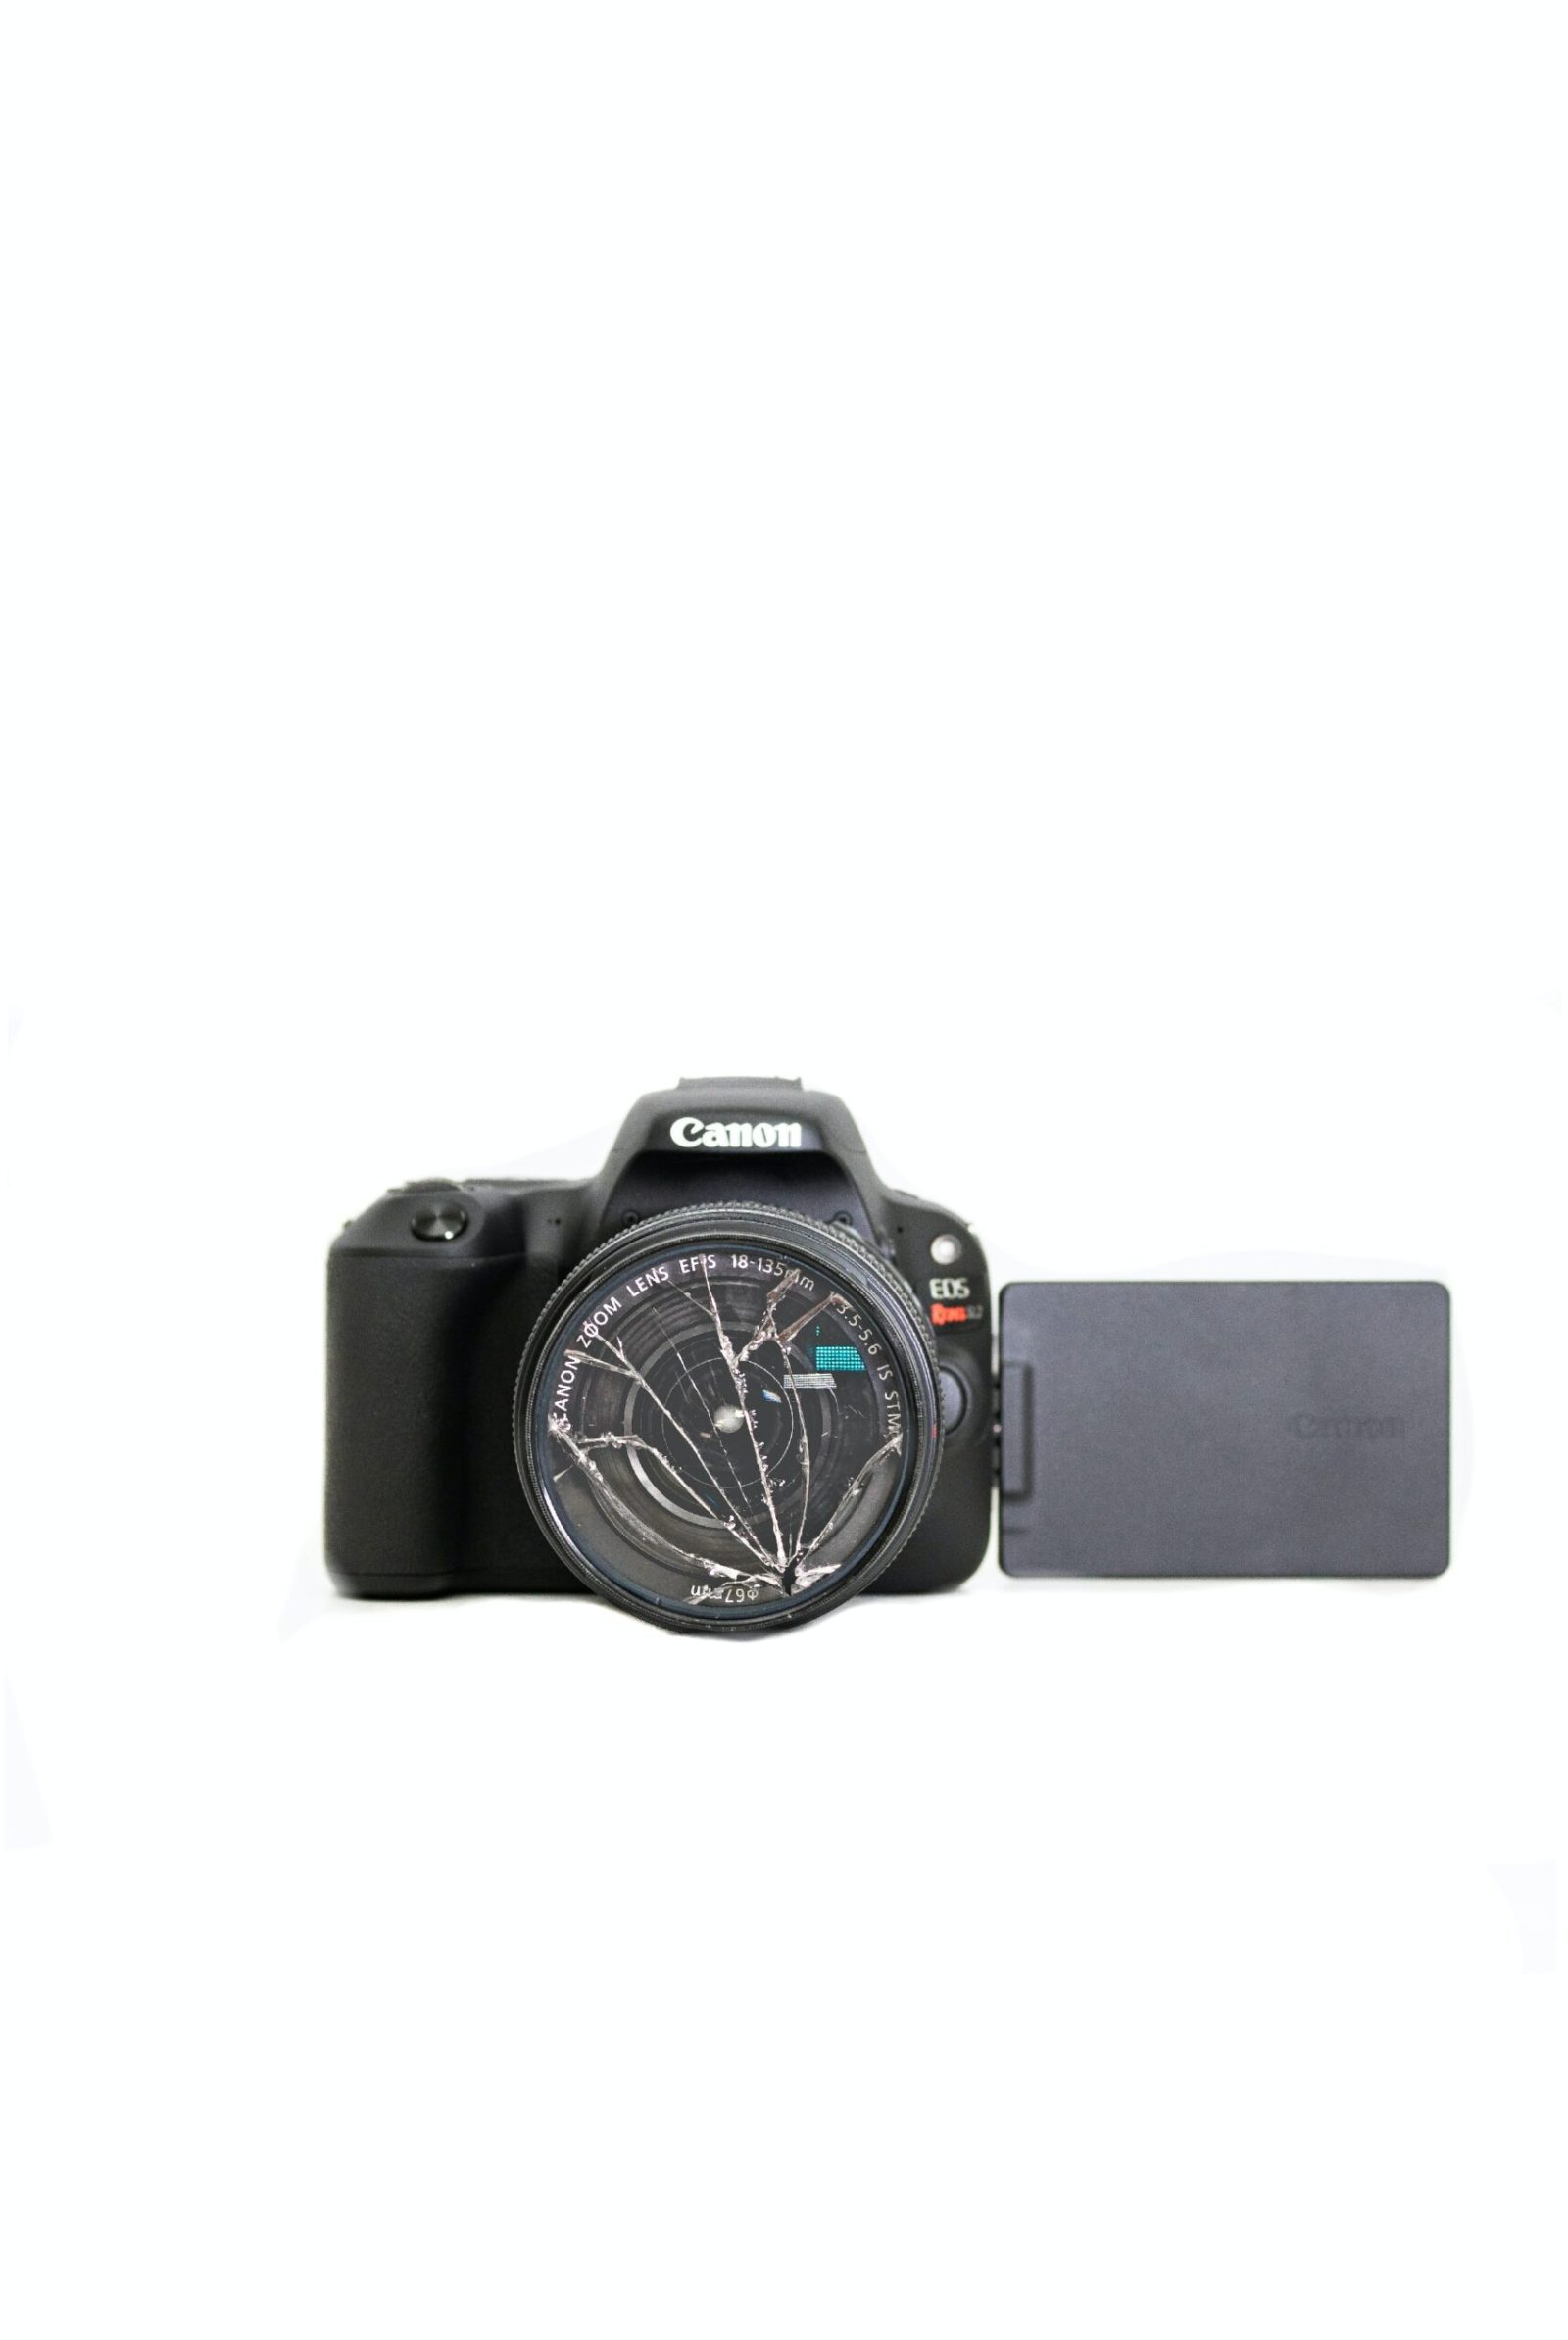 A DSLR camera with a broken lens is in front of a white background.